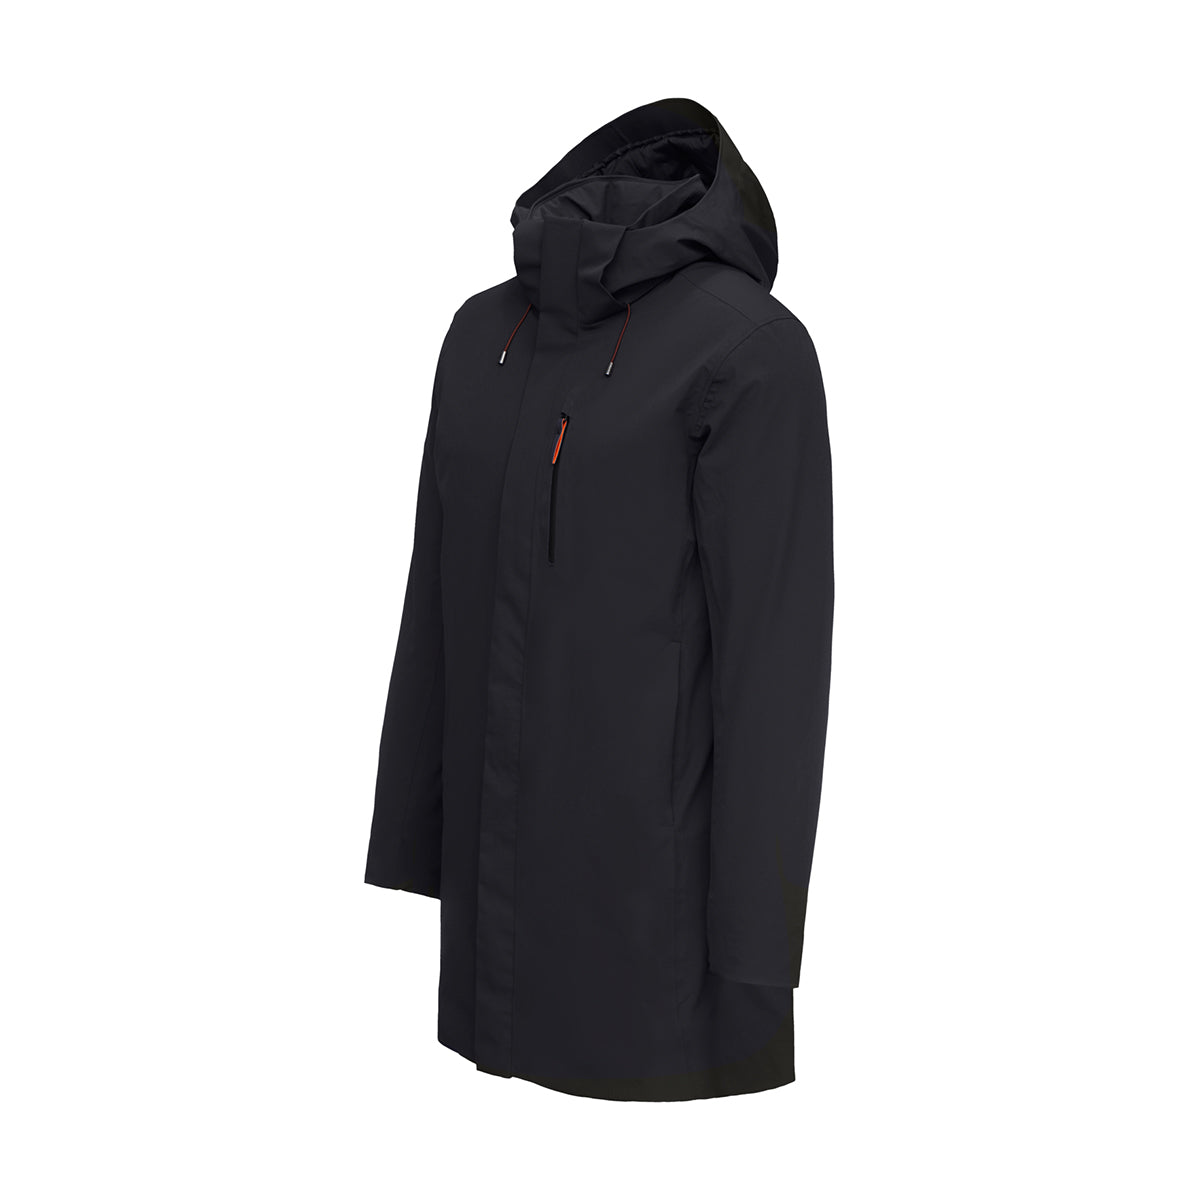 Grenoble II Parka - background::white,variant::black